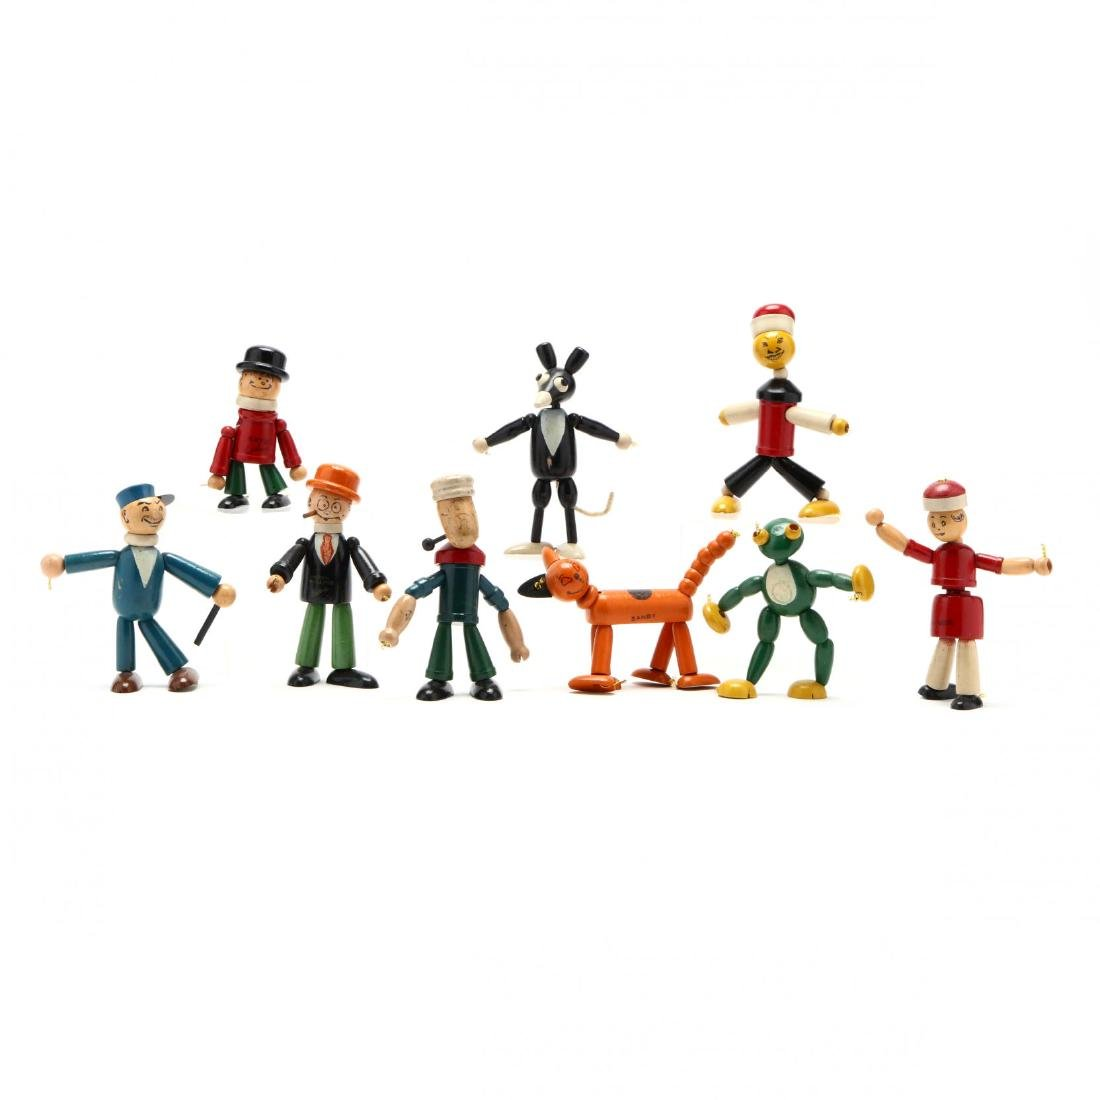 A Group of Articulated Wooden Toys